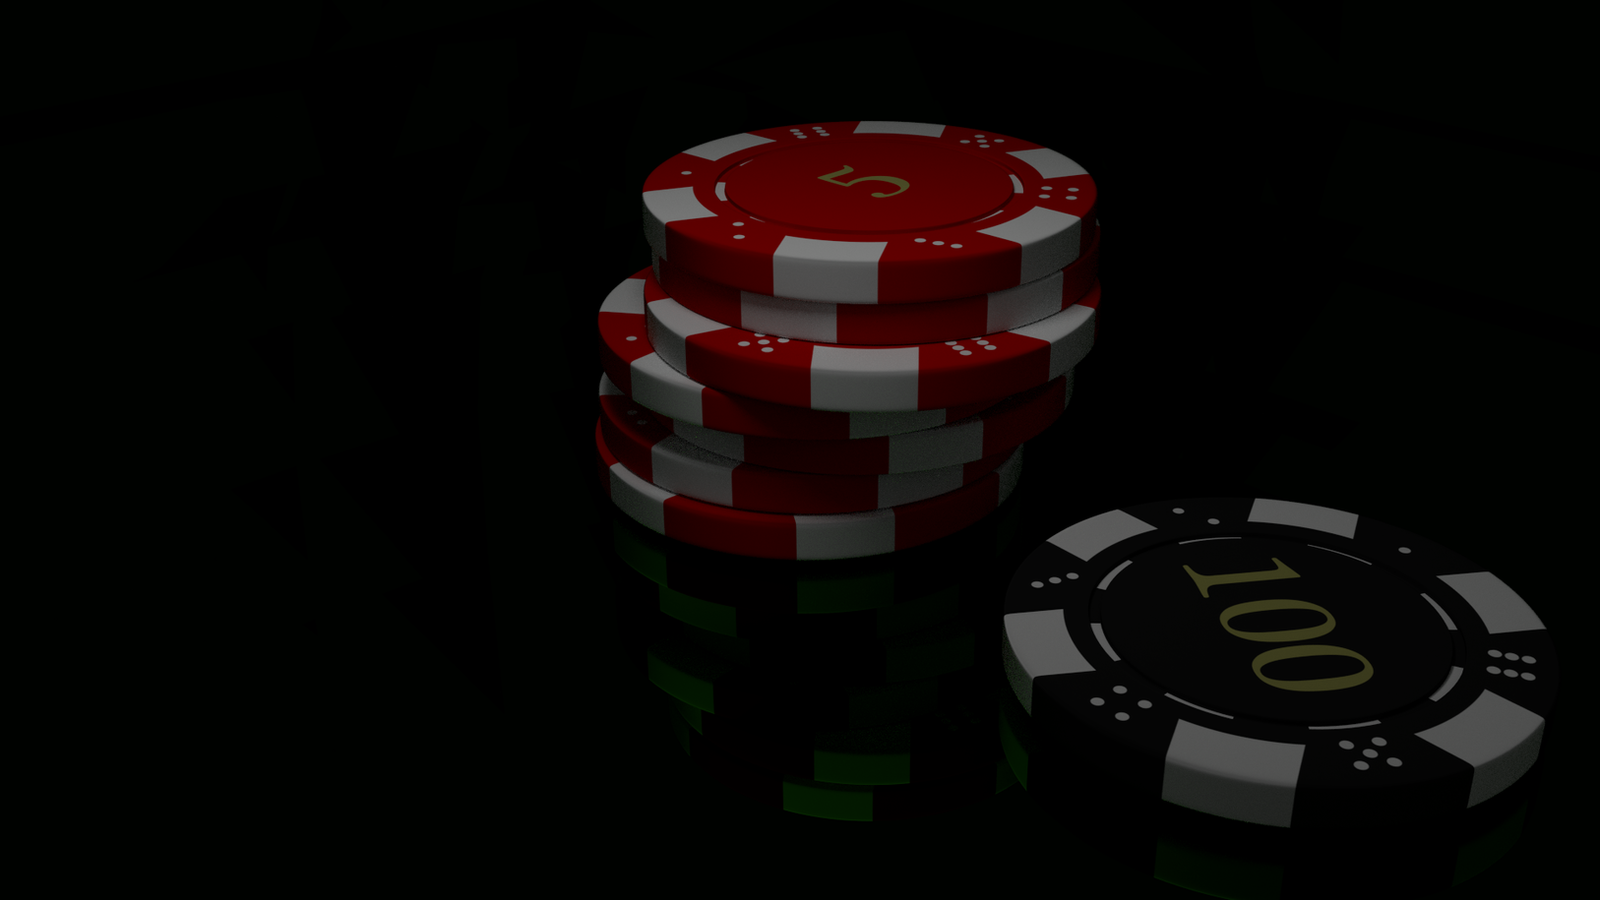 Poker Chips Wallpaper